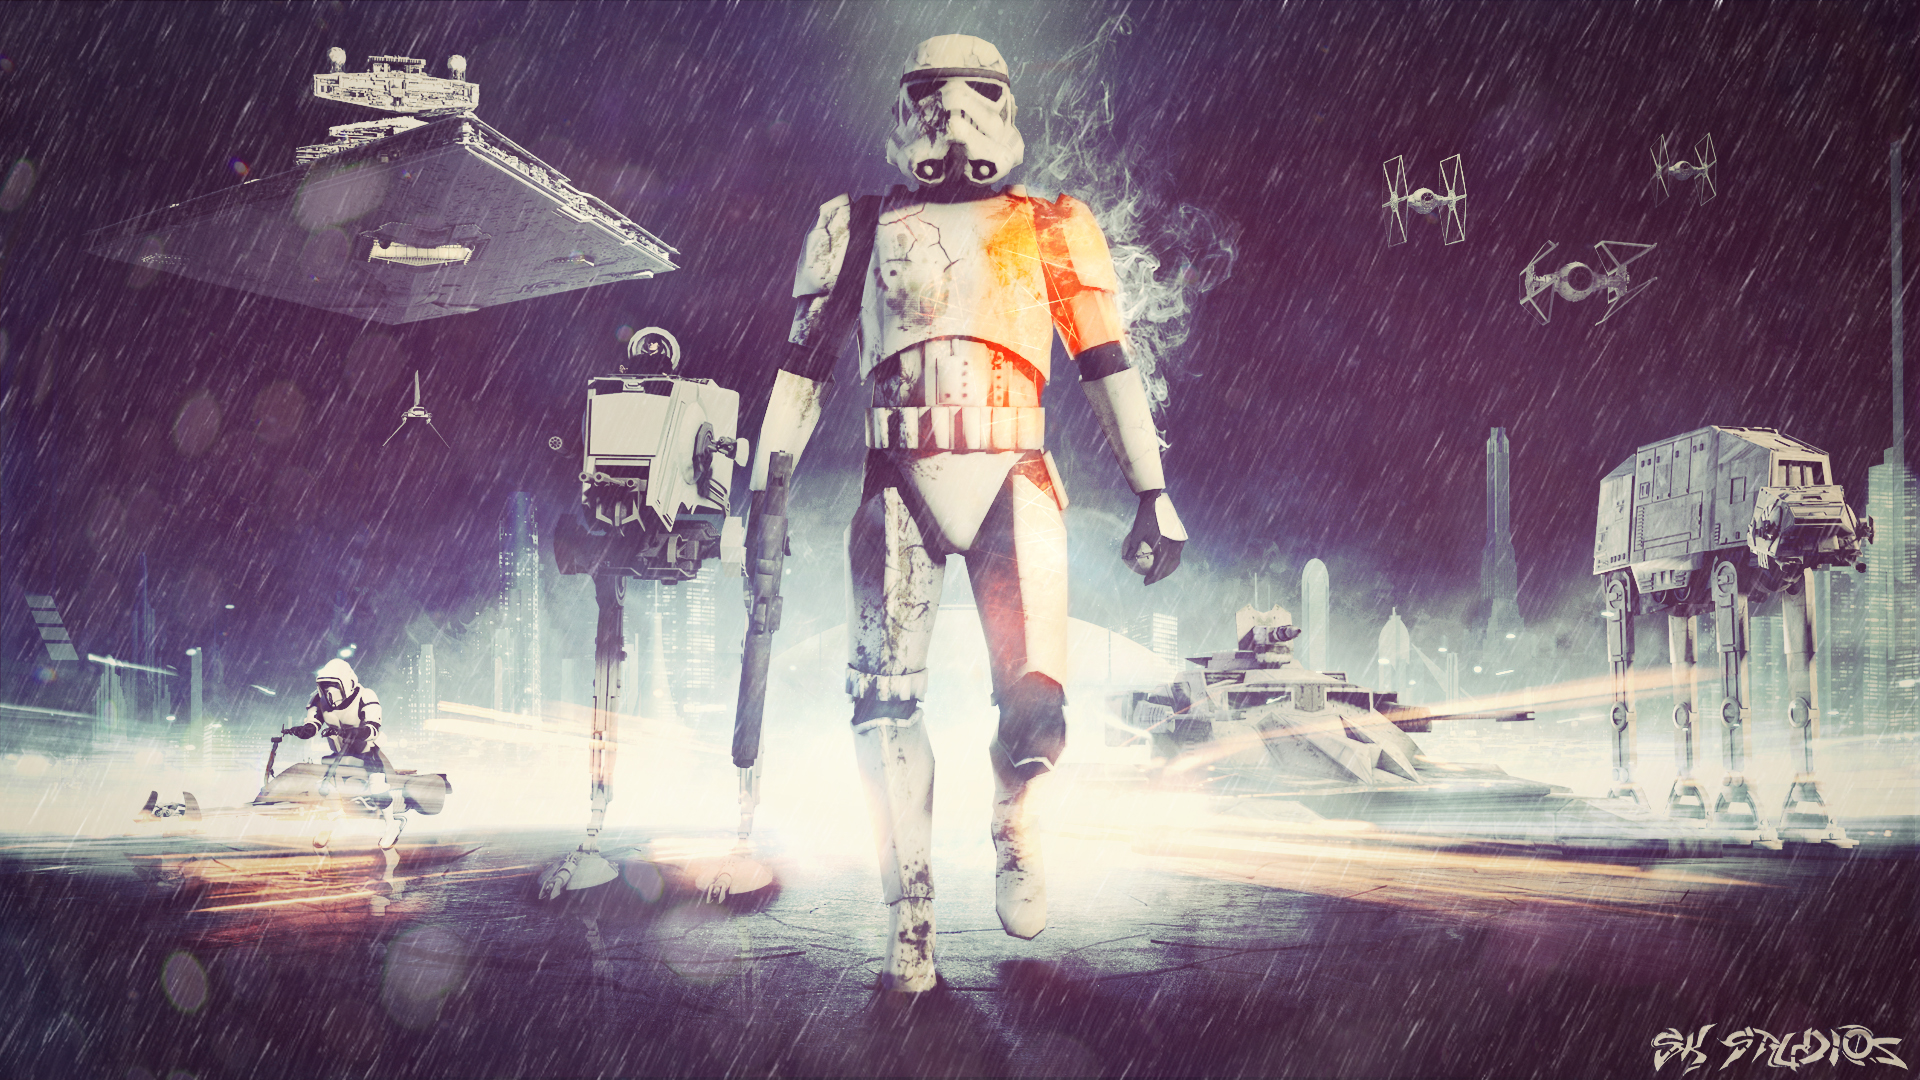 Star Wars Battlefront 3 Wallpapers: Star Wars Battlefront (BF3 Edition) Empire Image